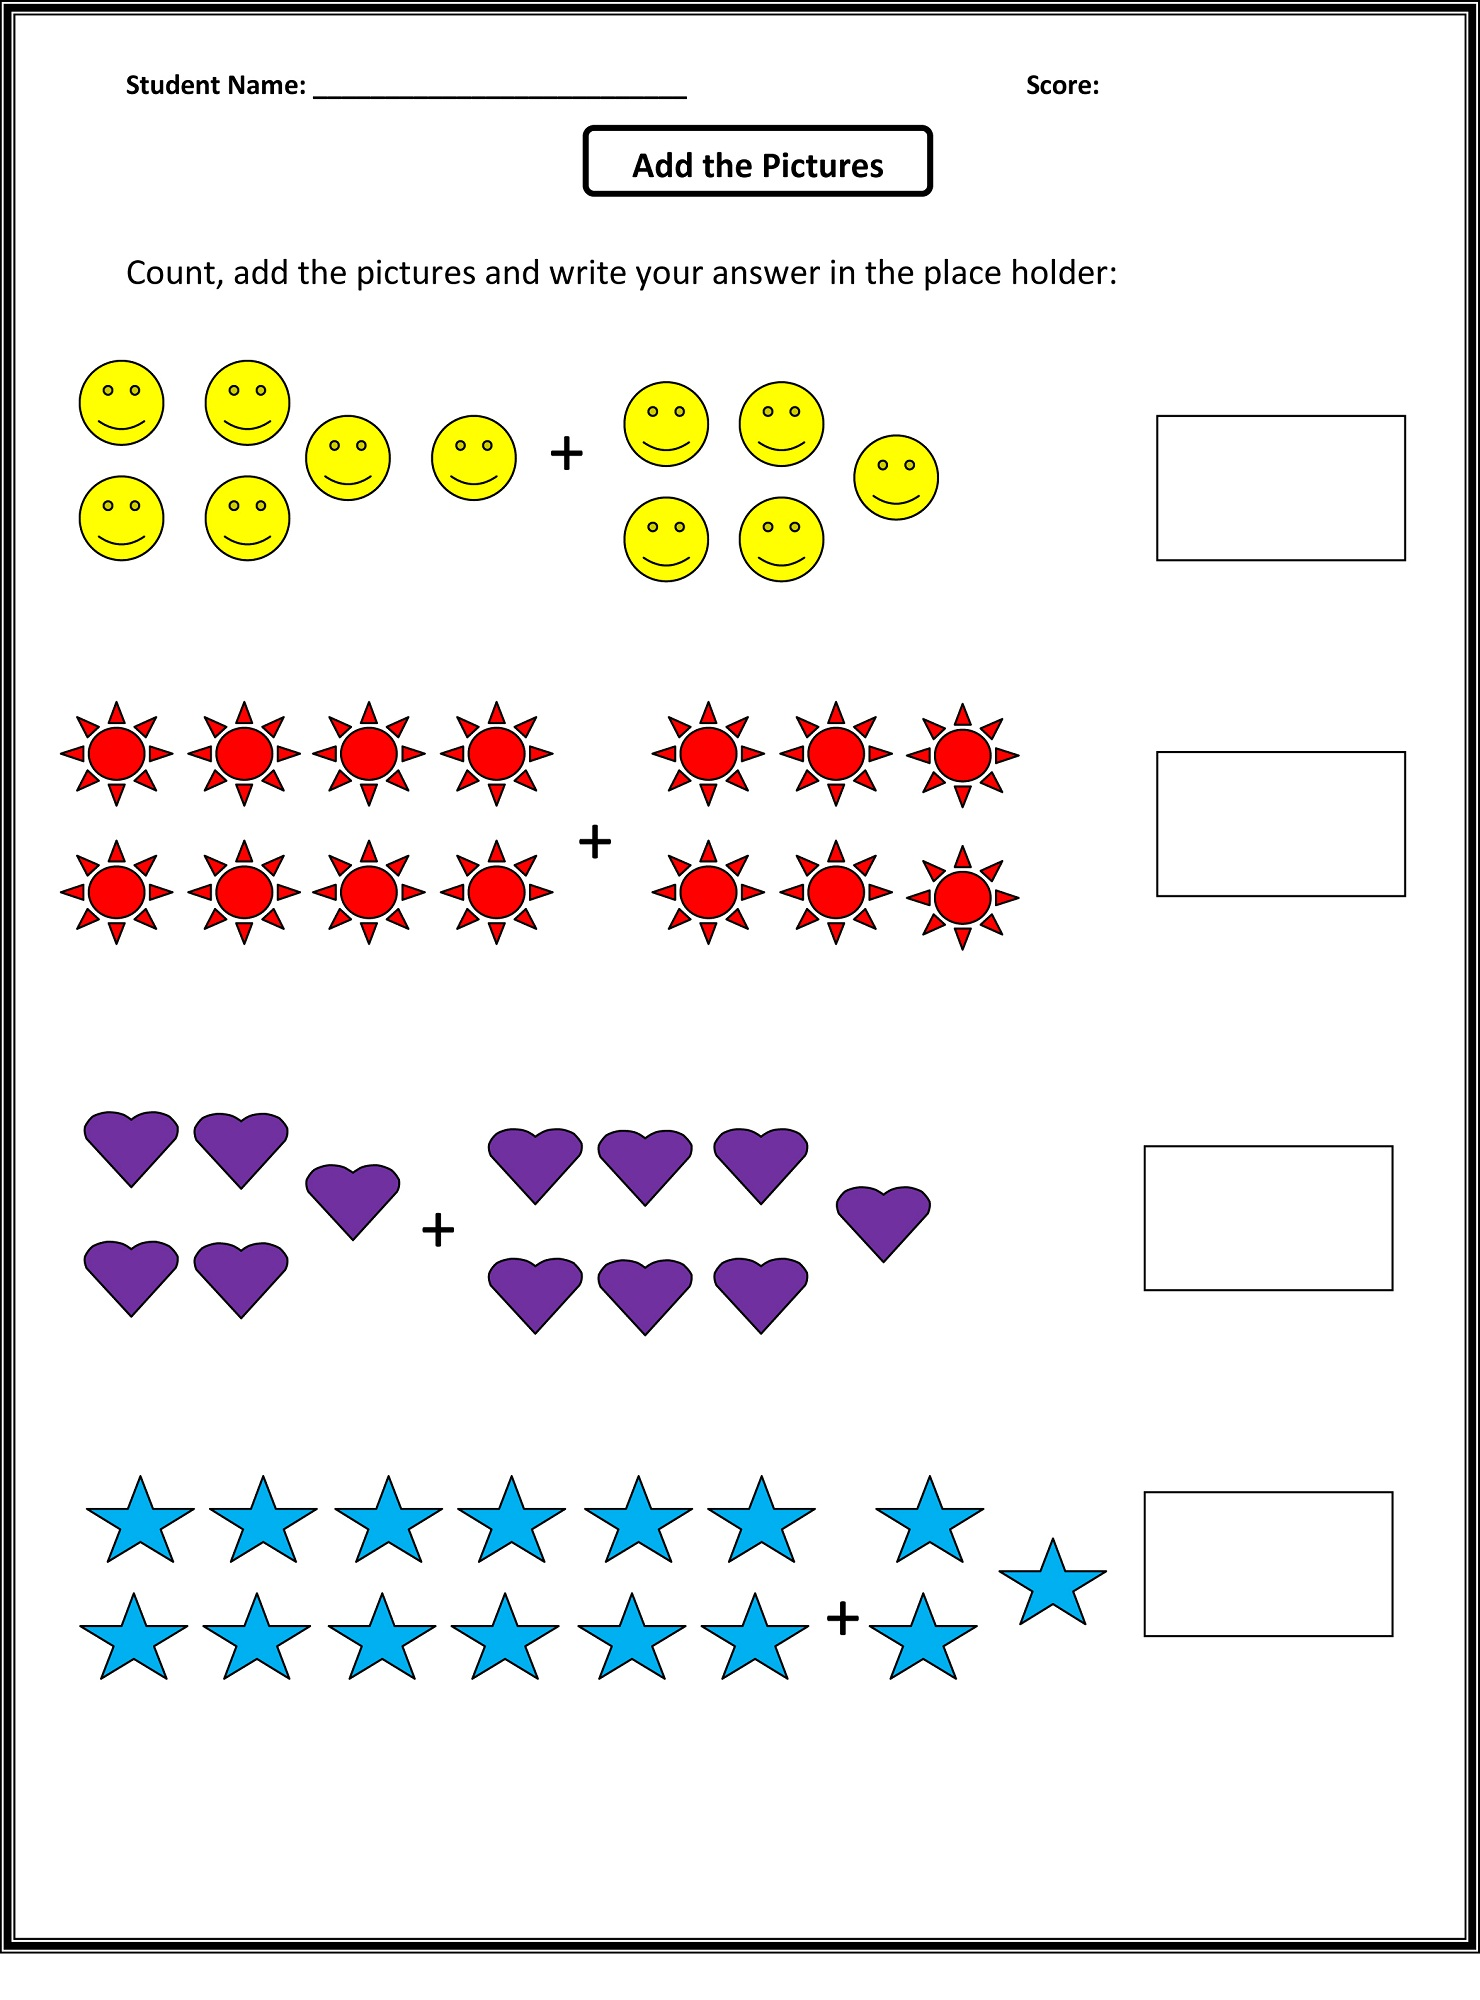 Worksheet 1 Grade 1 grade math worksheets abitlikethis for learning activity shelter